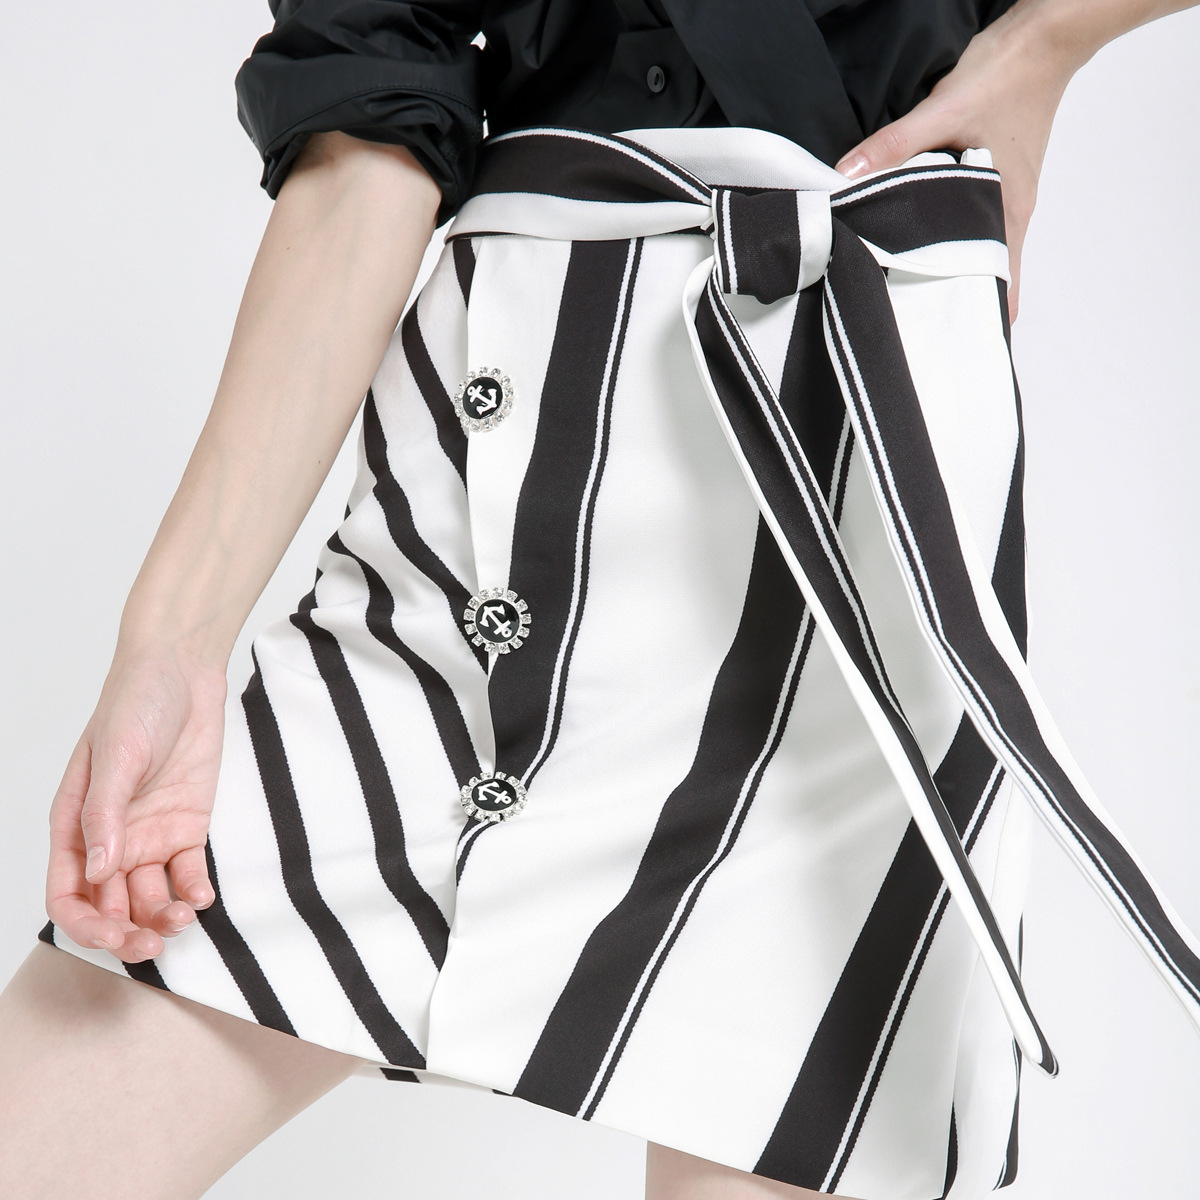 New Design 2018 New High Waist Skirts with Bow Tie Black and White Stripes A-line Fashion Women Skirts with Buttons